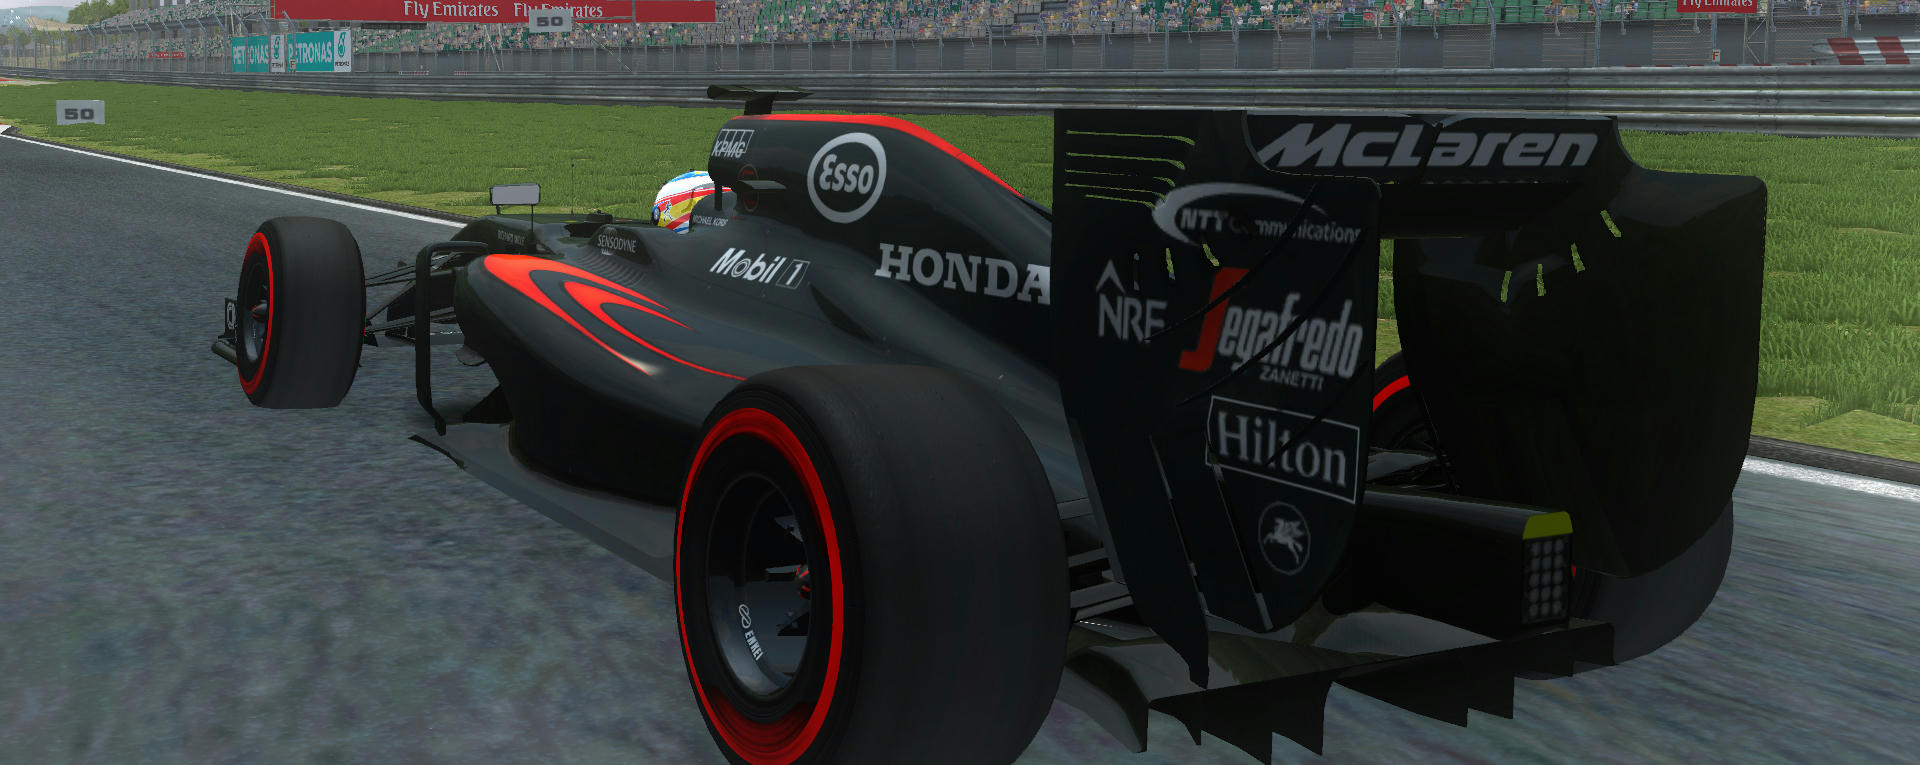 Updated Mclaren Honda Mp4-31 skins Kb1dd3za6yd74j6zg